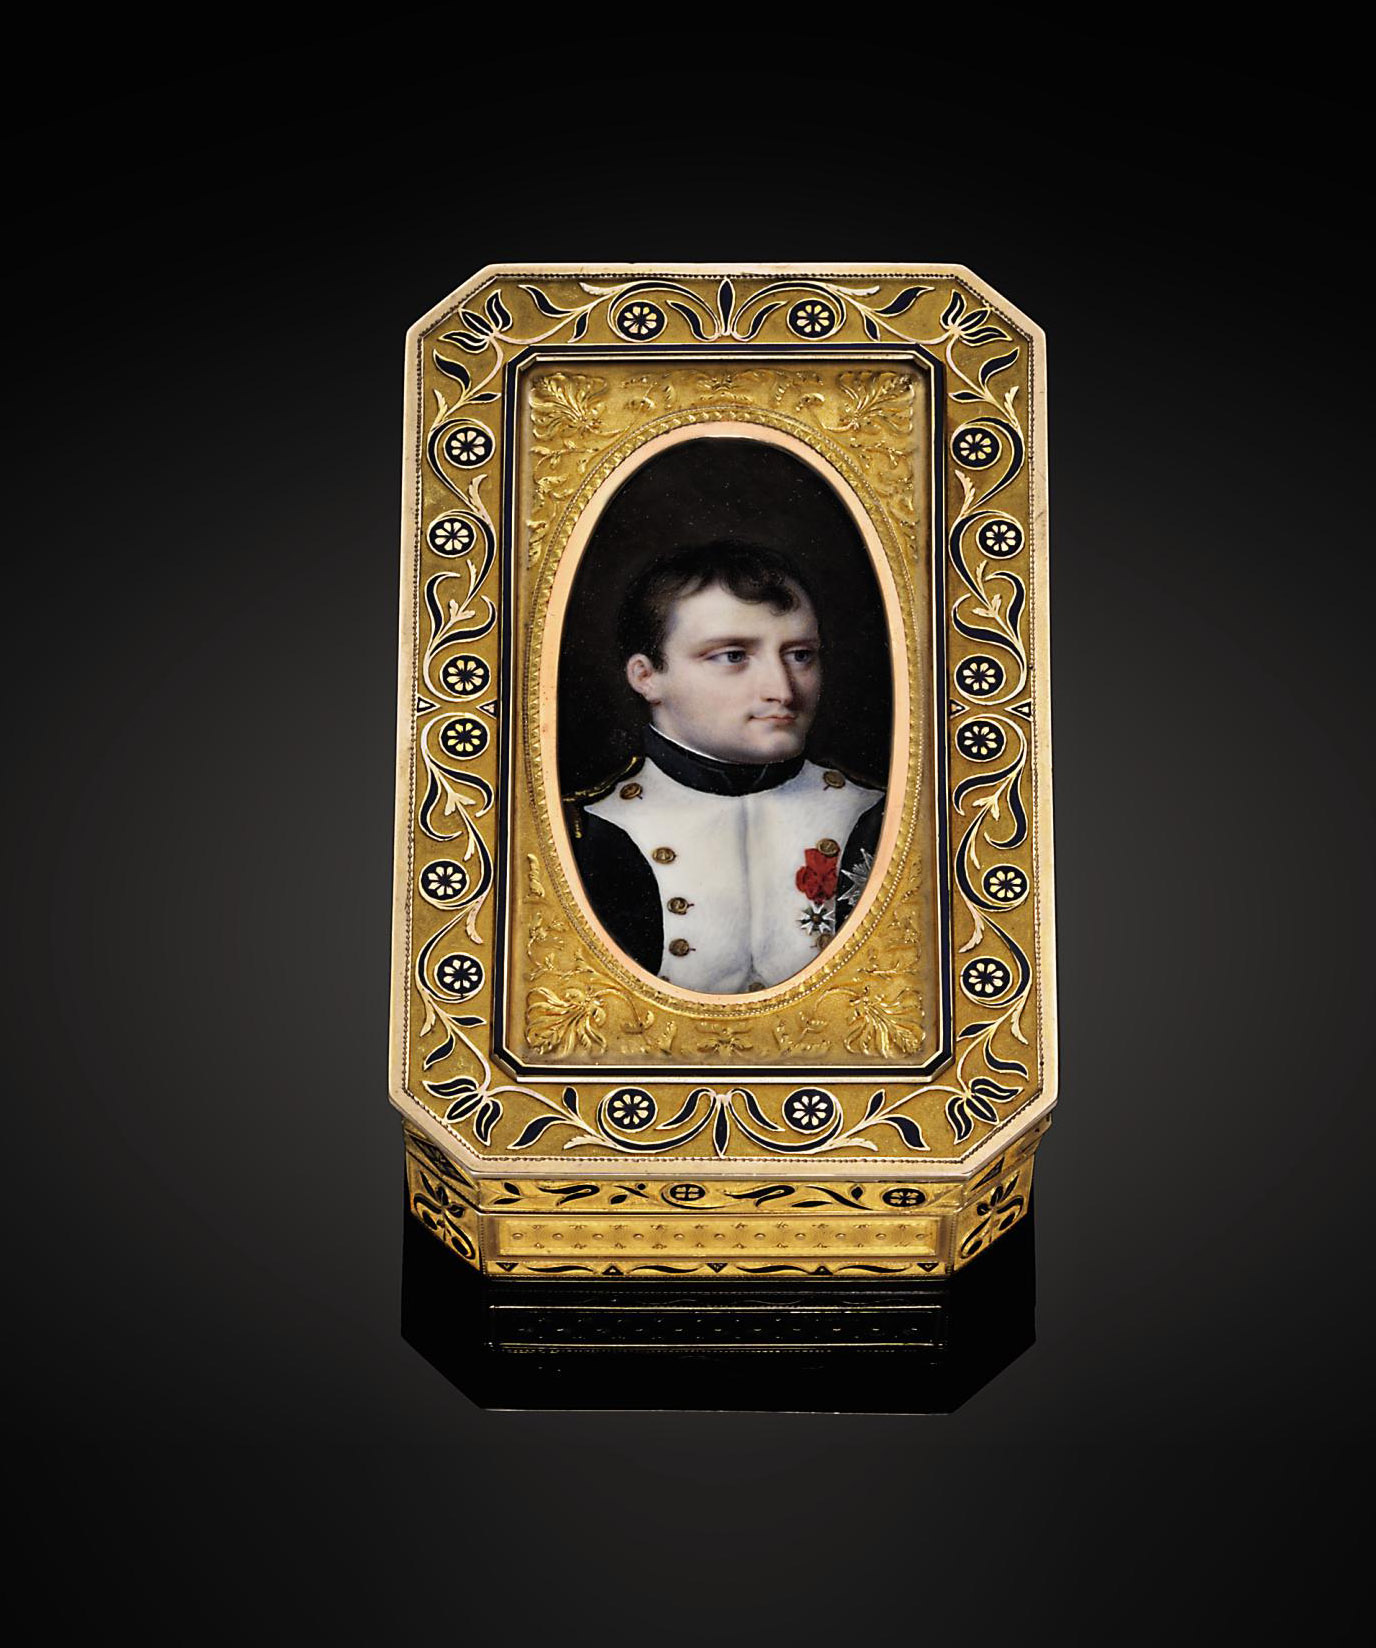 AN IMPERIAL FRENCH PARCEL-ENAMELLED GOLD PRESENTATION SNUFF-BOX SET WITH A PORTRAIT MINIATURE